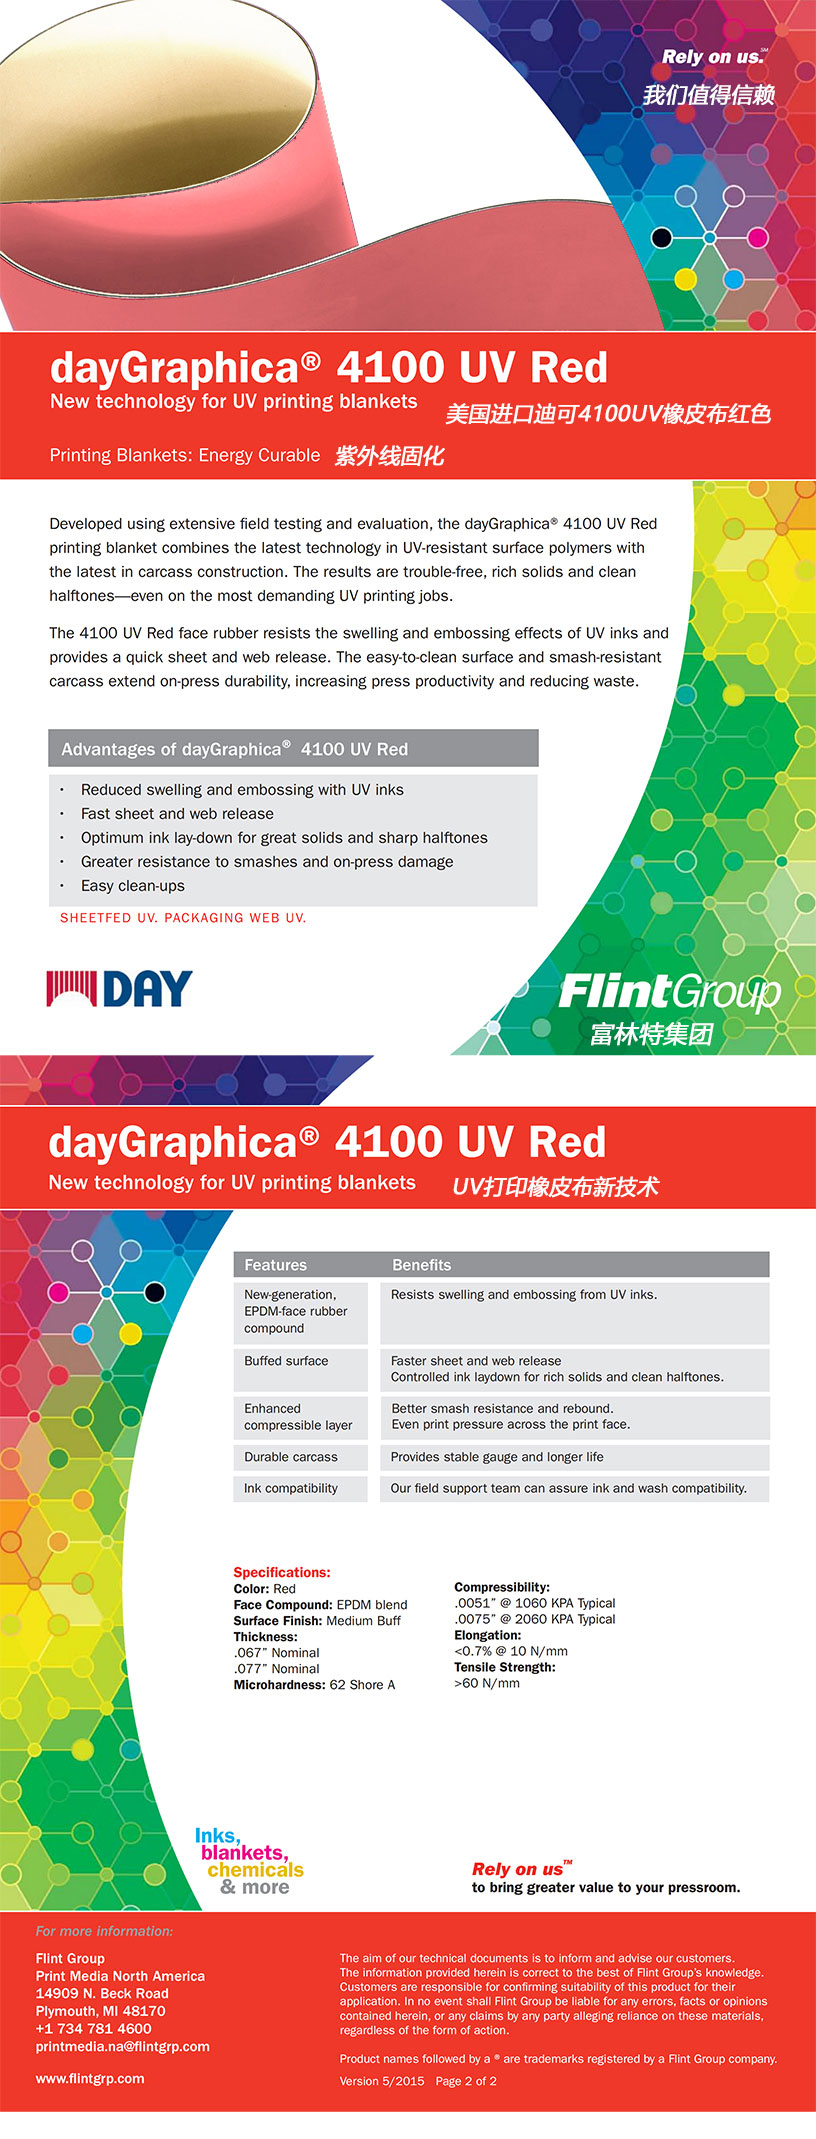 daygraphica_4100_uv_red_00详情页_01.jpg